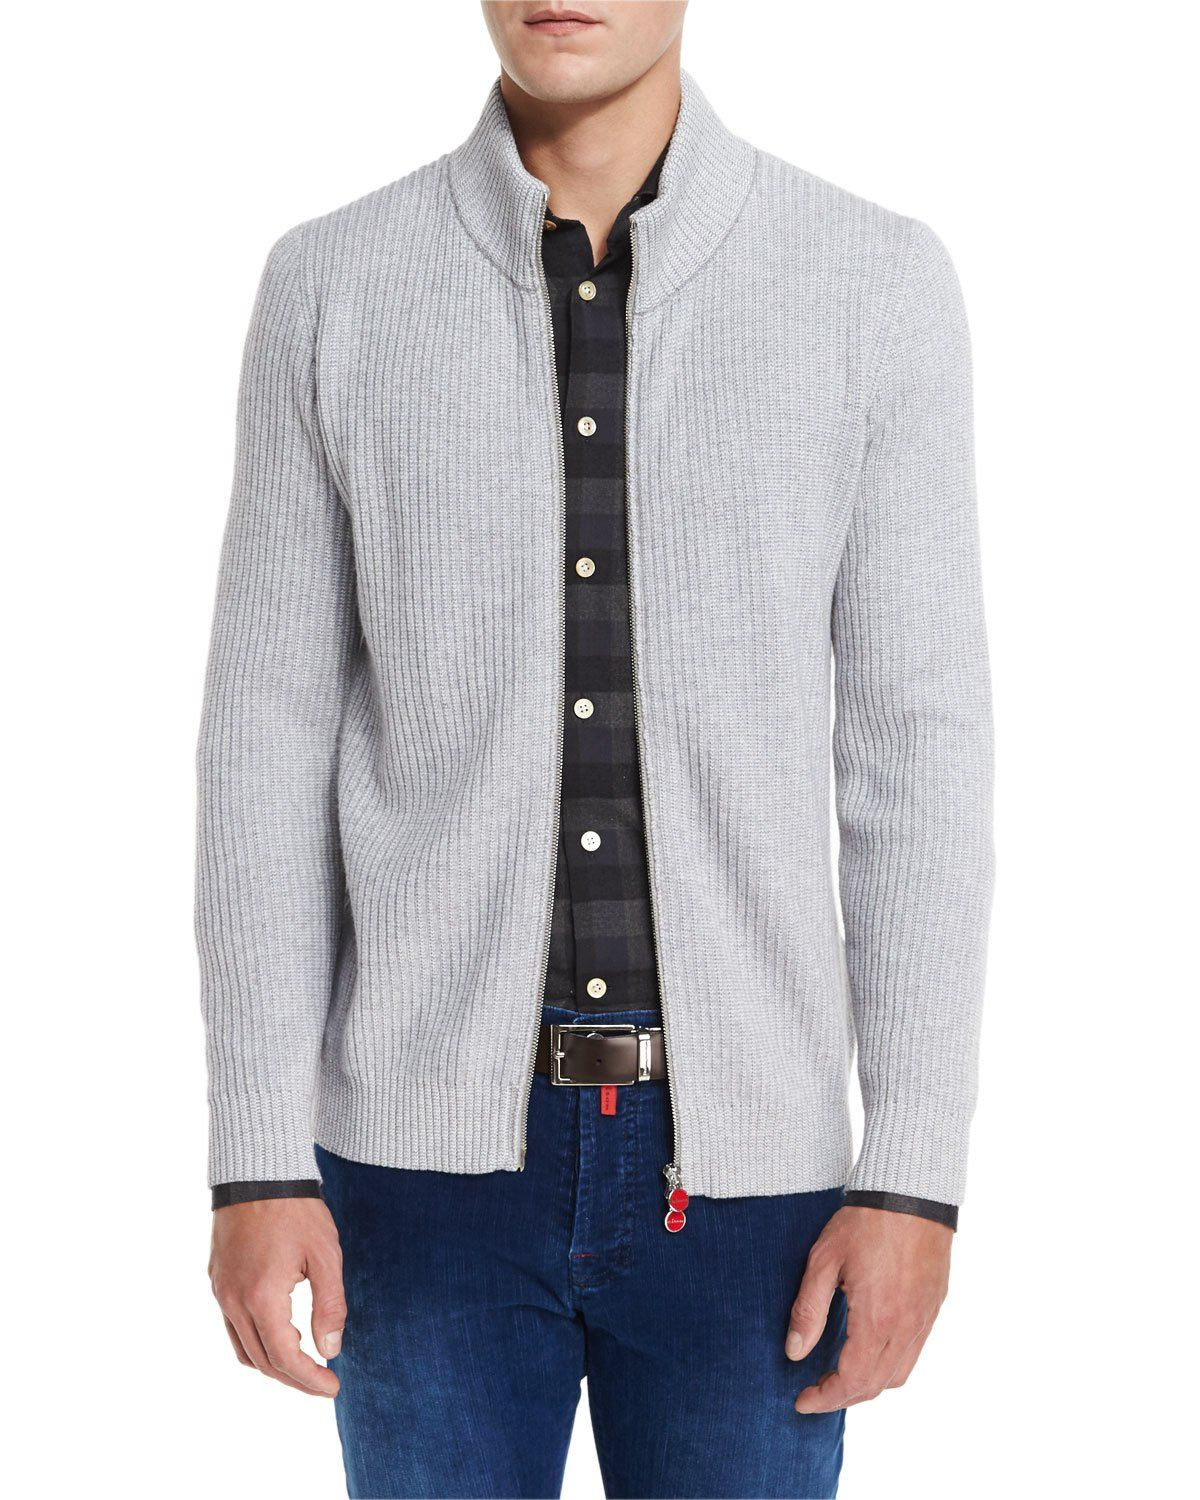 Ribbed Cashmere Full-Zip Cardigan, Light Gray | Products ...